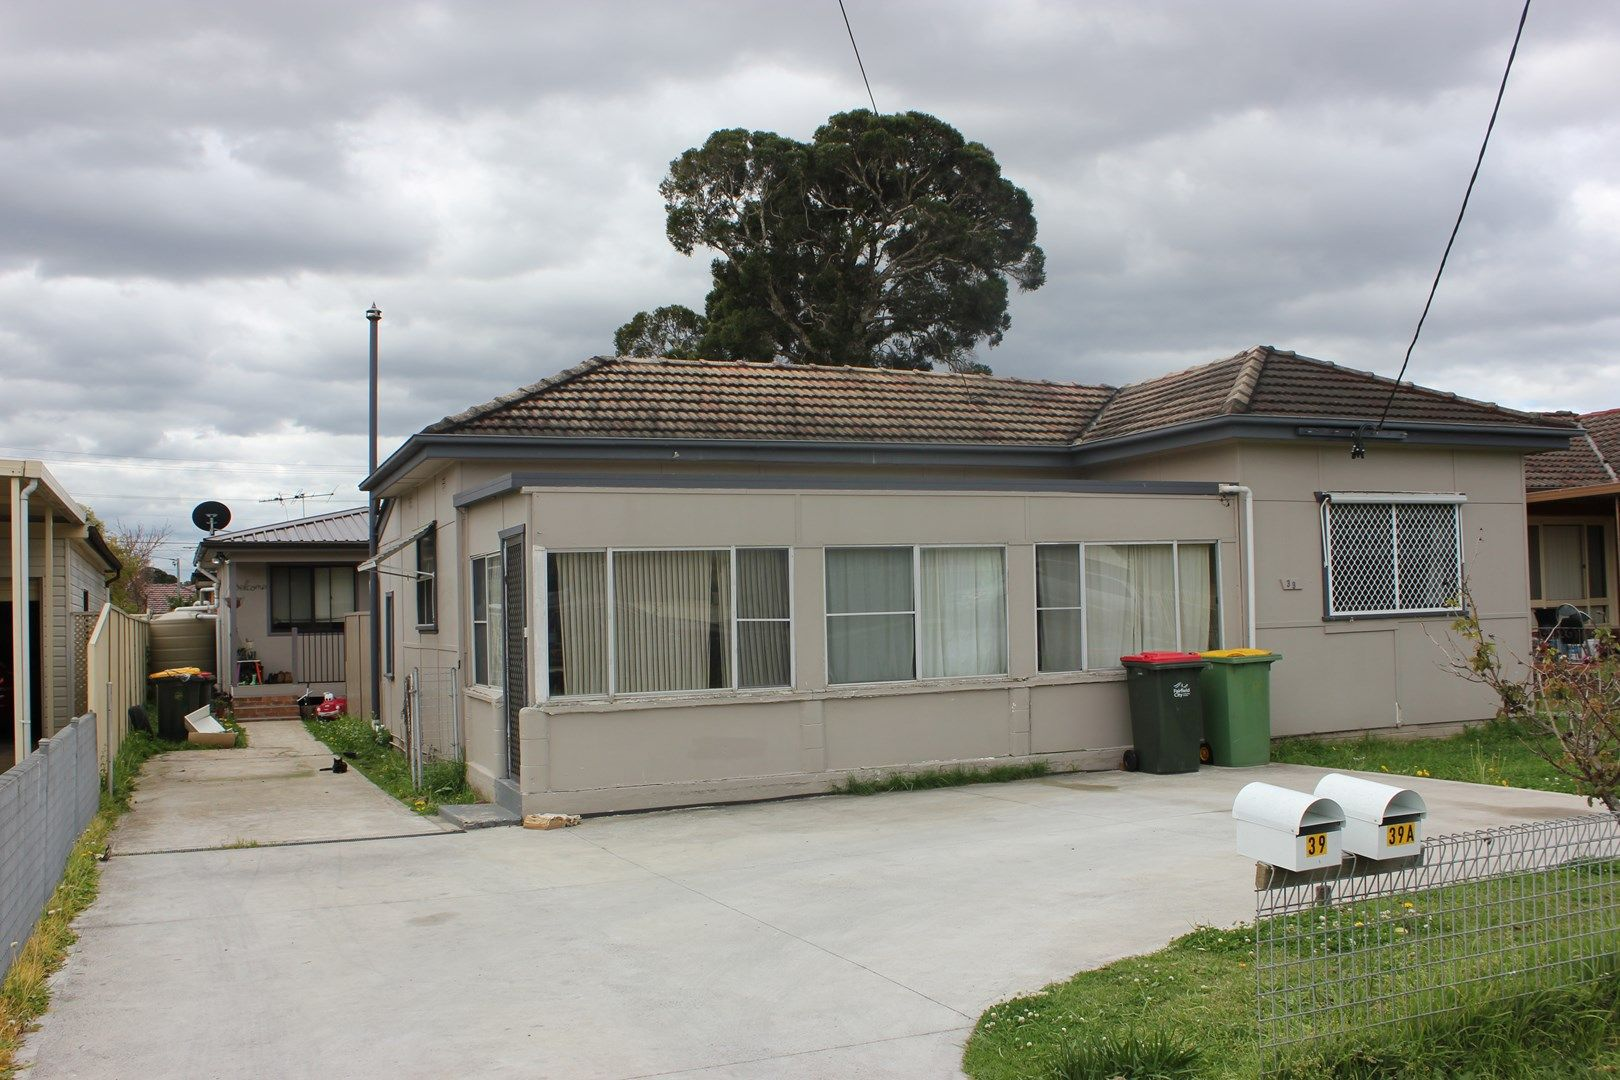 39 TORRENS STREET, Canley Heights NSW 2166, Image 0